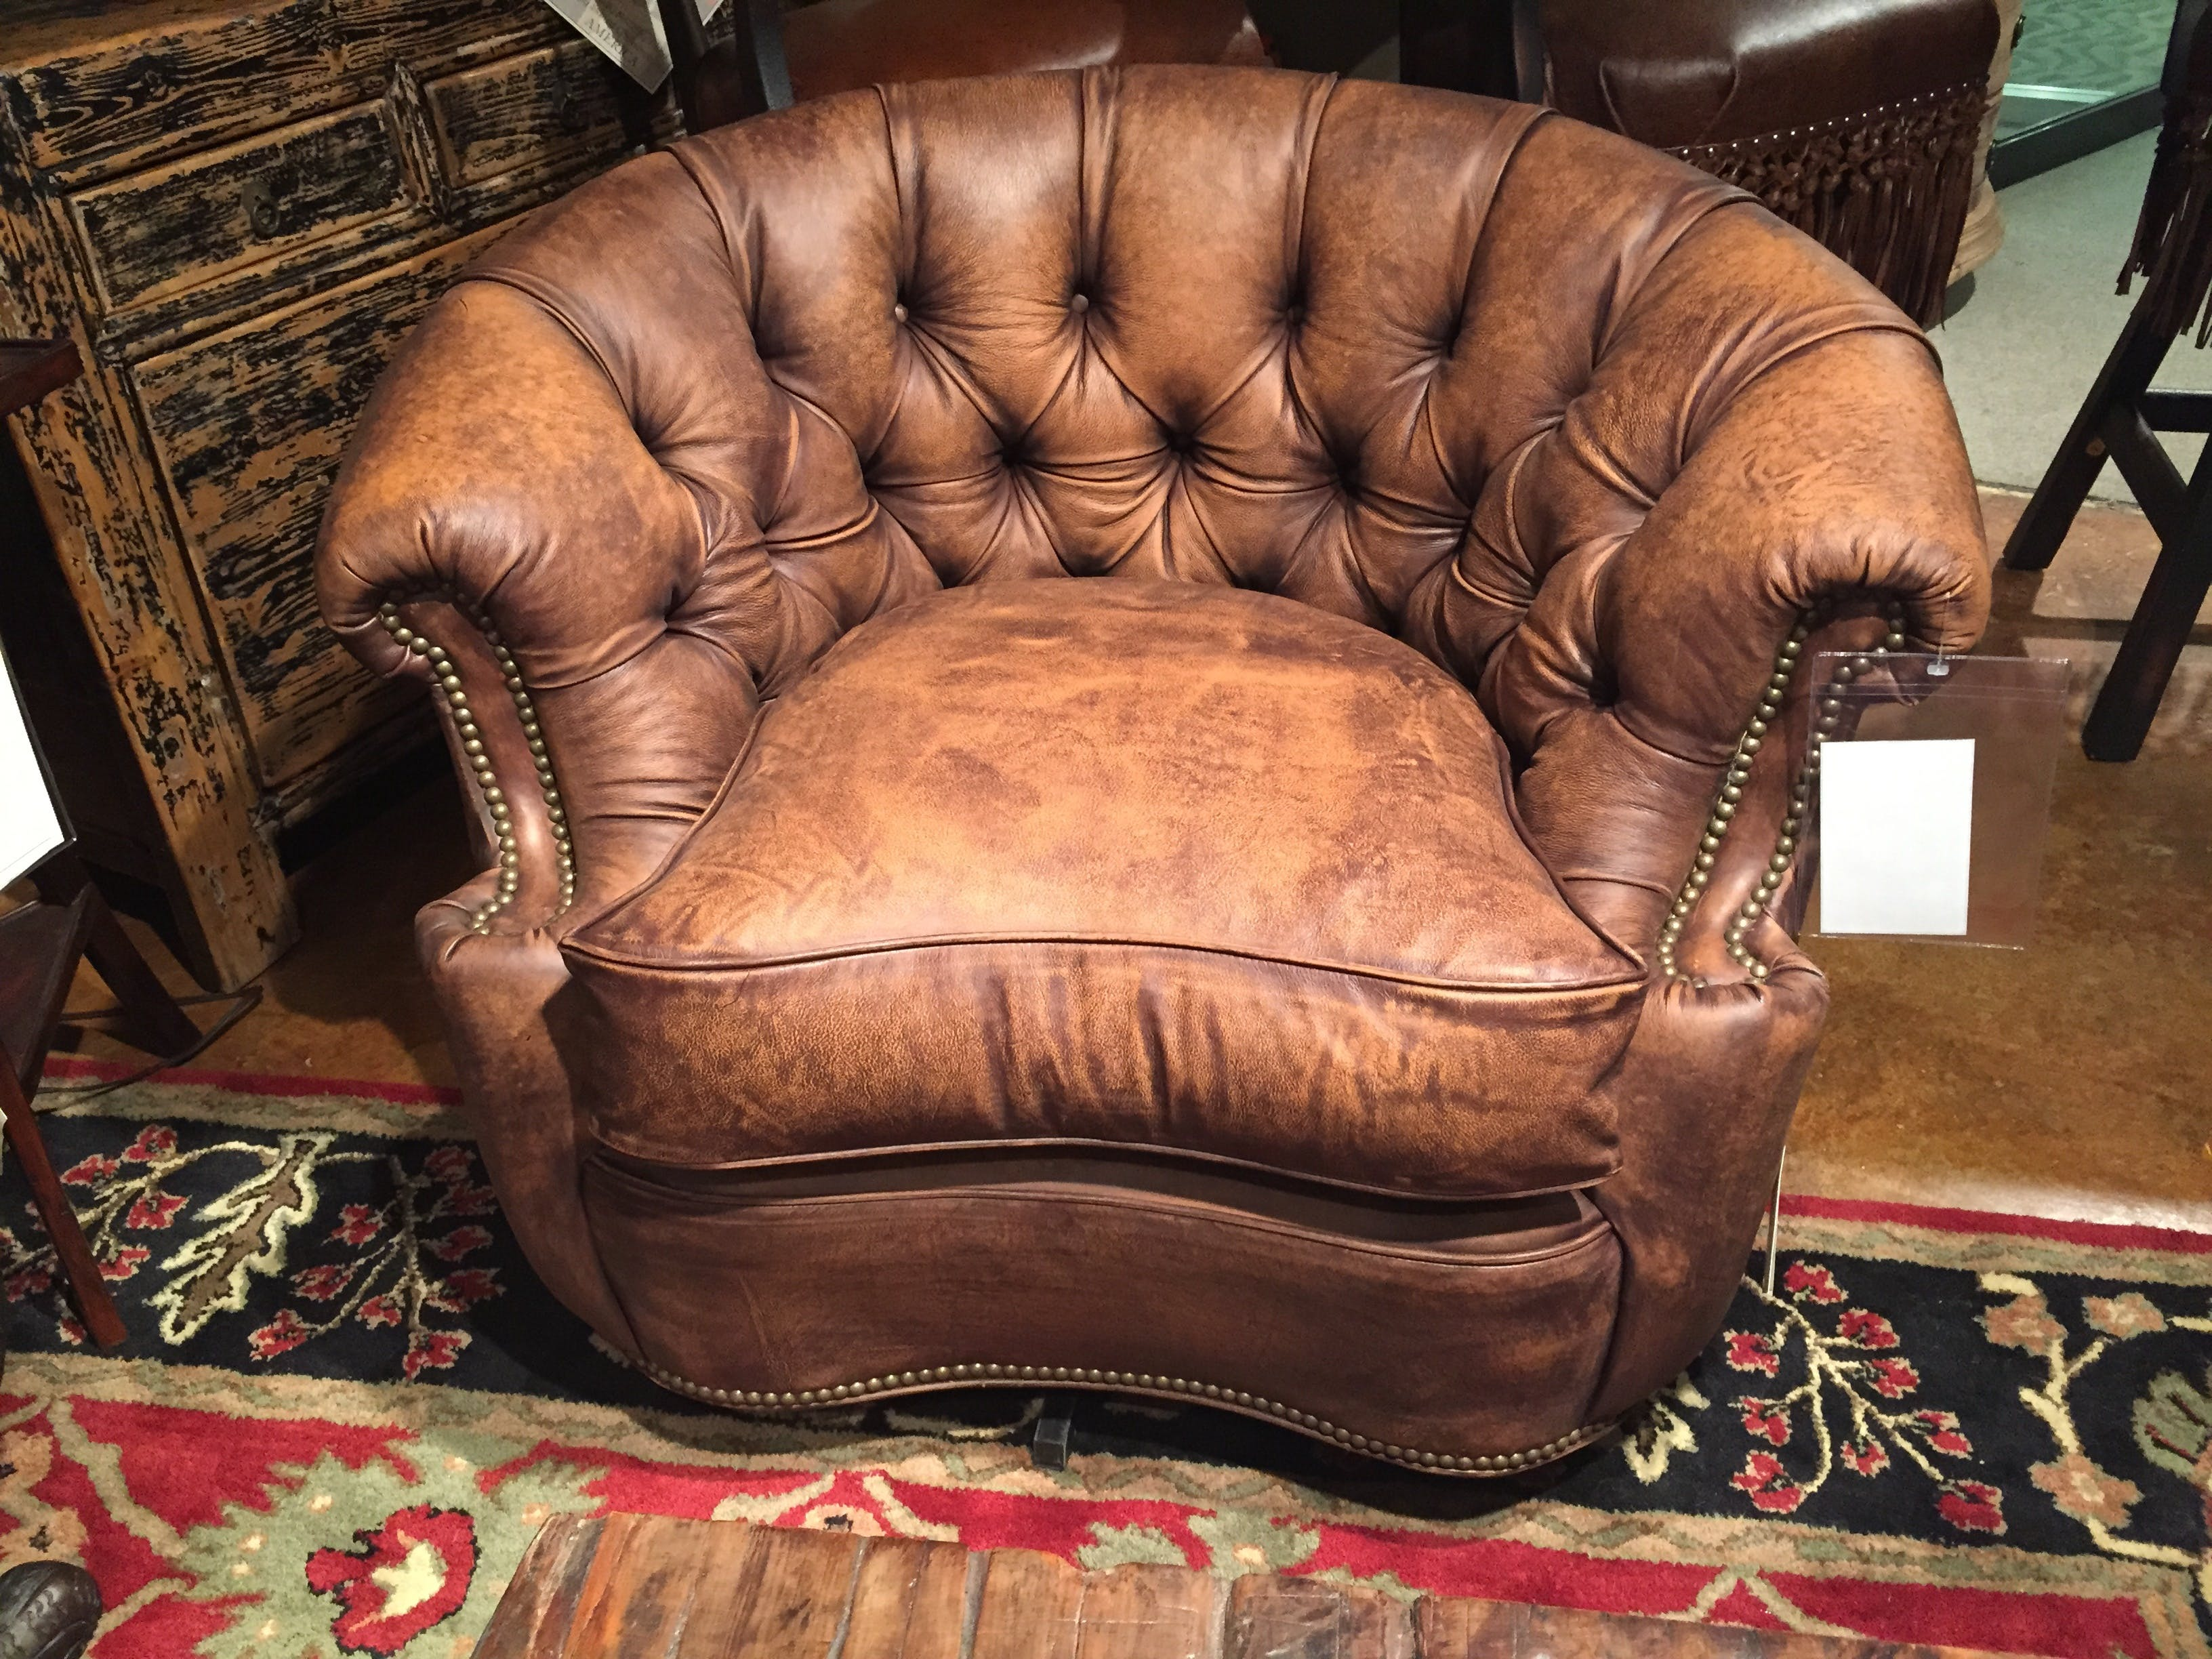 Redoubtable Old Hickory Tannery Furniture Outlet | Astonishing Old Hickory Tannery